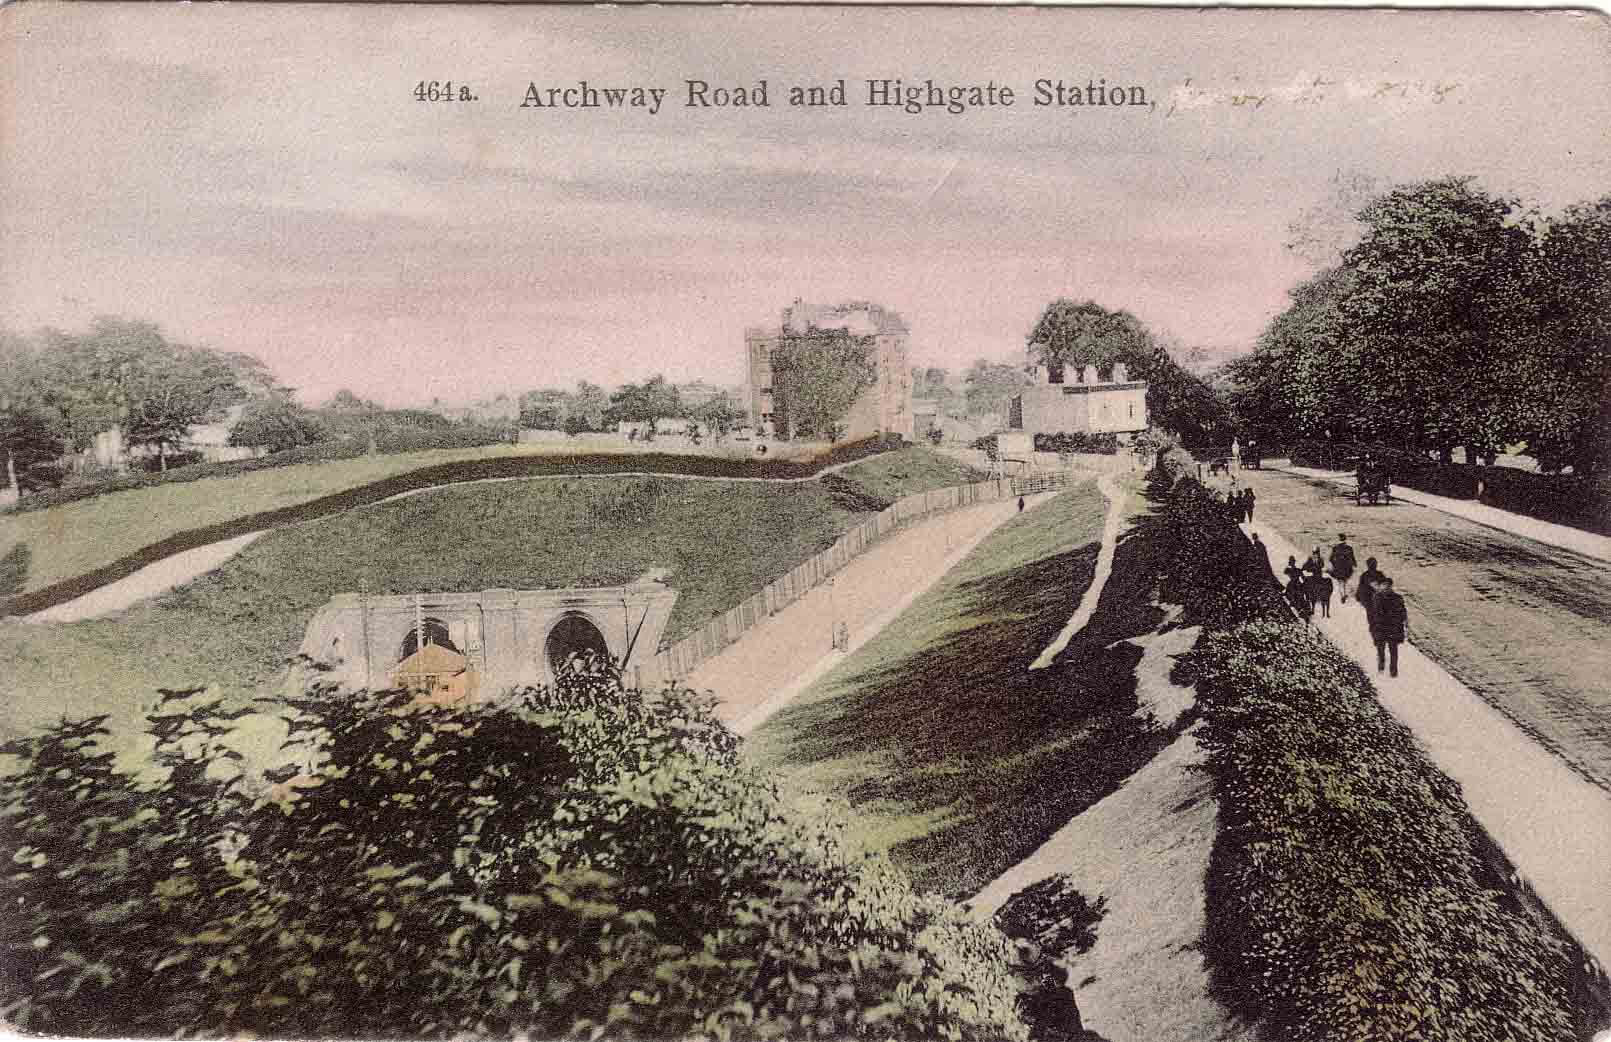 Postcard of Archway Road and Highgate Station